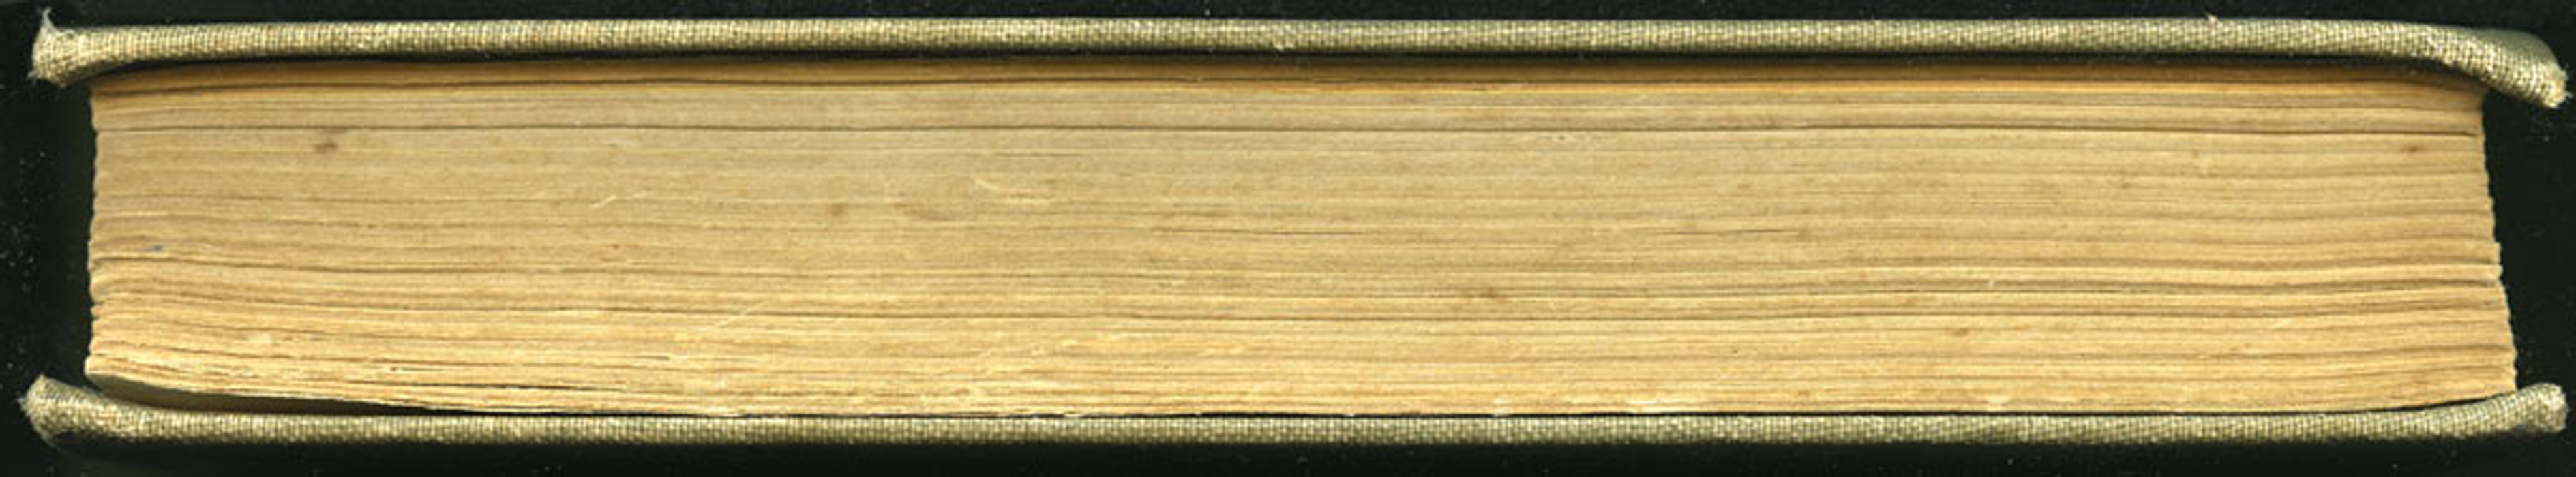 Fore Edge of the [1900] Hurst & Co. Reprint, Version 1